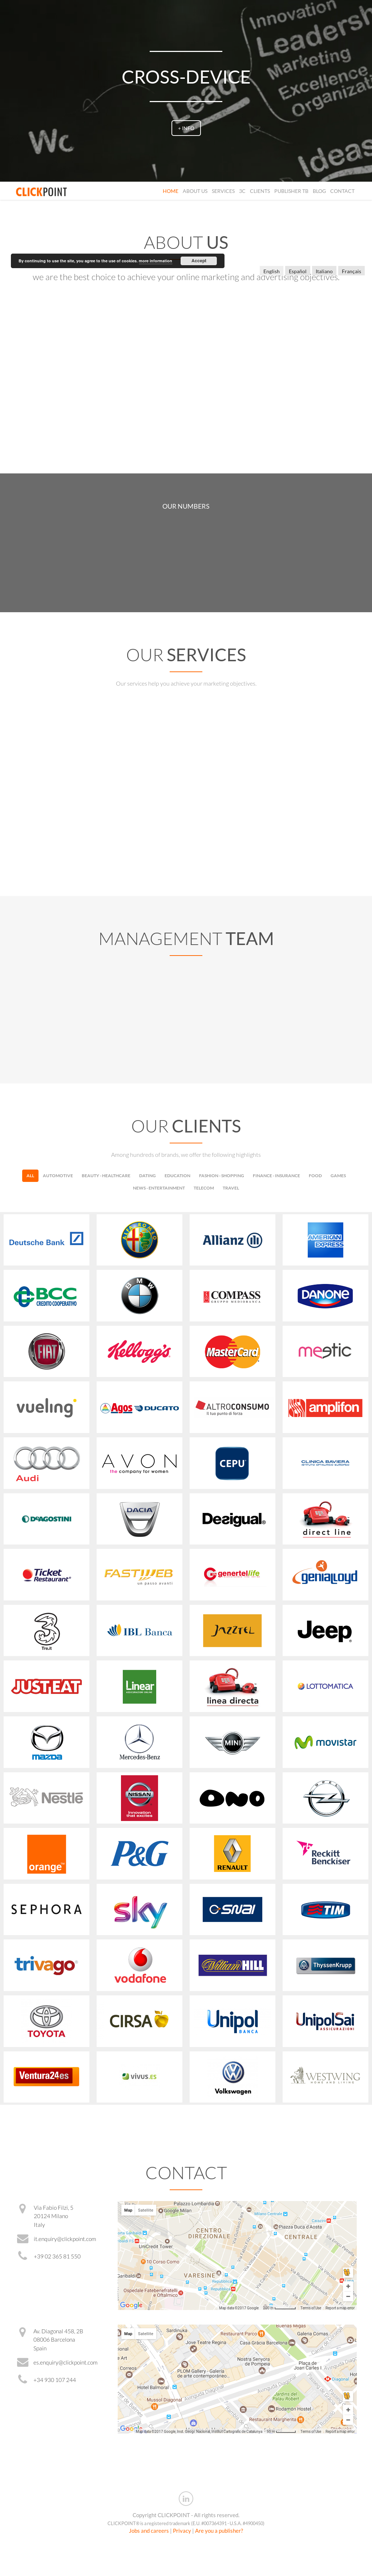 ClickPoint Competitors, Revenue and Employees - Owler Company Profile